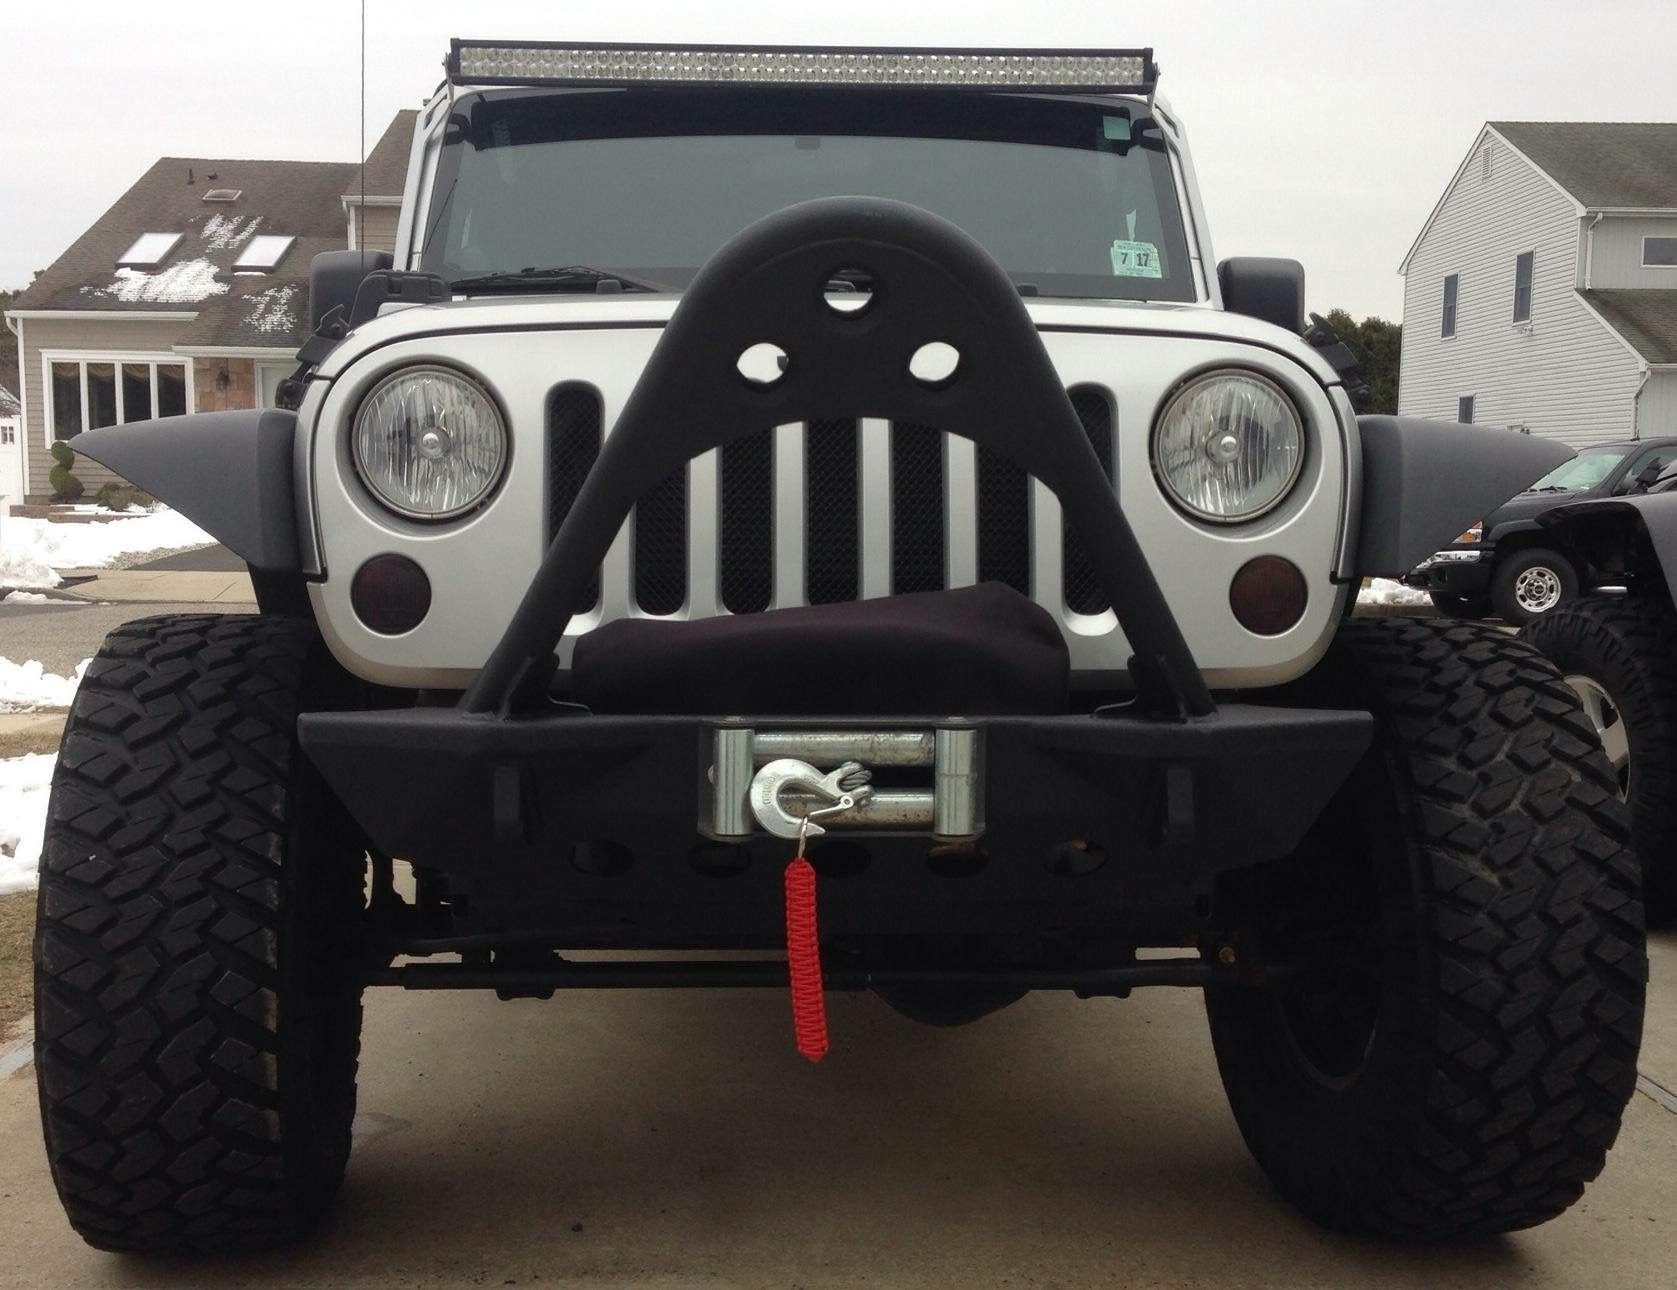 Angry Off Road Gallery Off Roading Pictures Off Roading Images